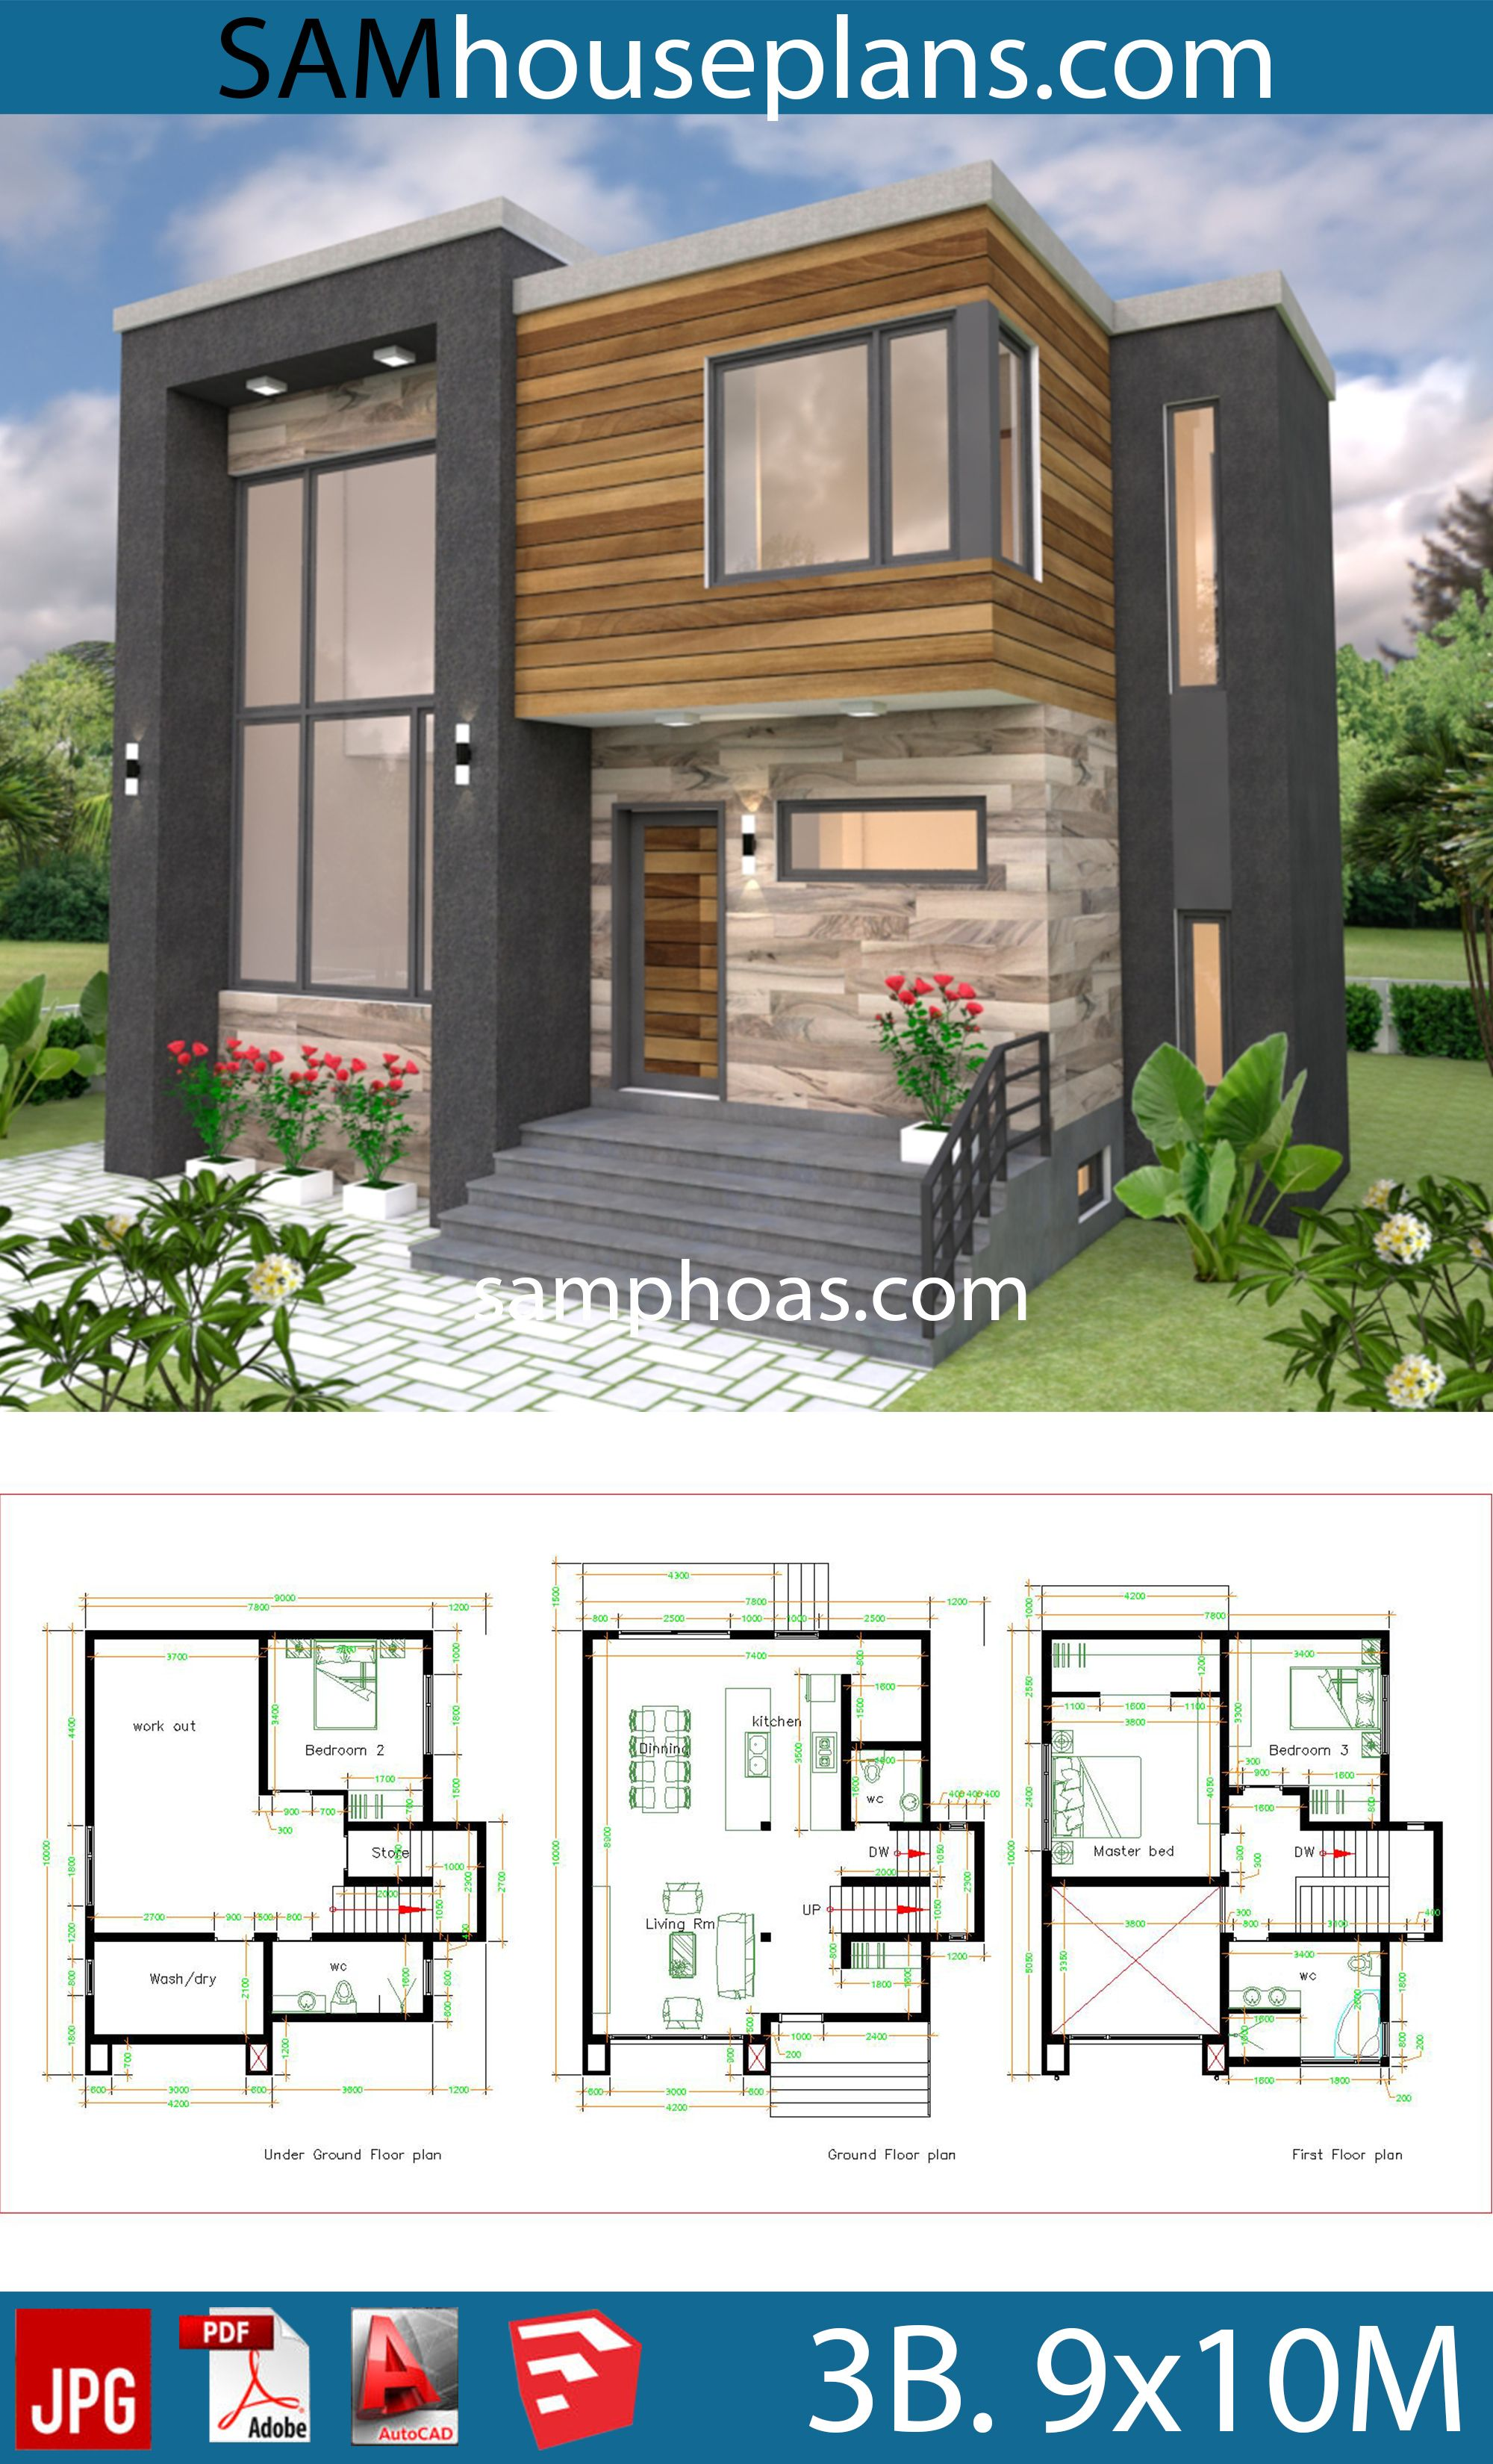 House Plans 9x10m With 3 Bedrooms House Plans Free Downloads Small Modern House Plans Contemporary House Plans Small Modern Home